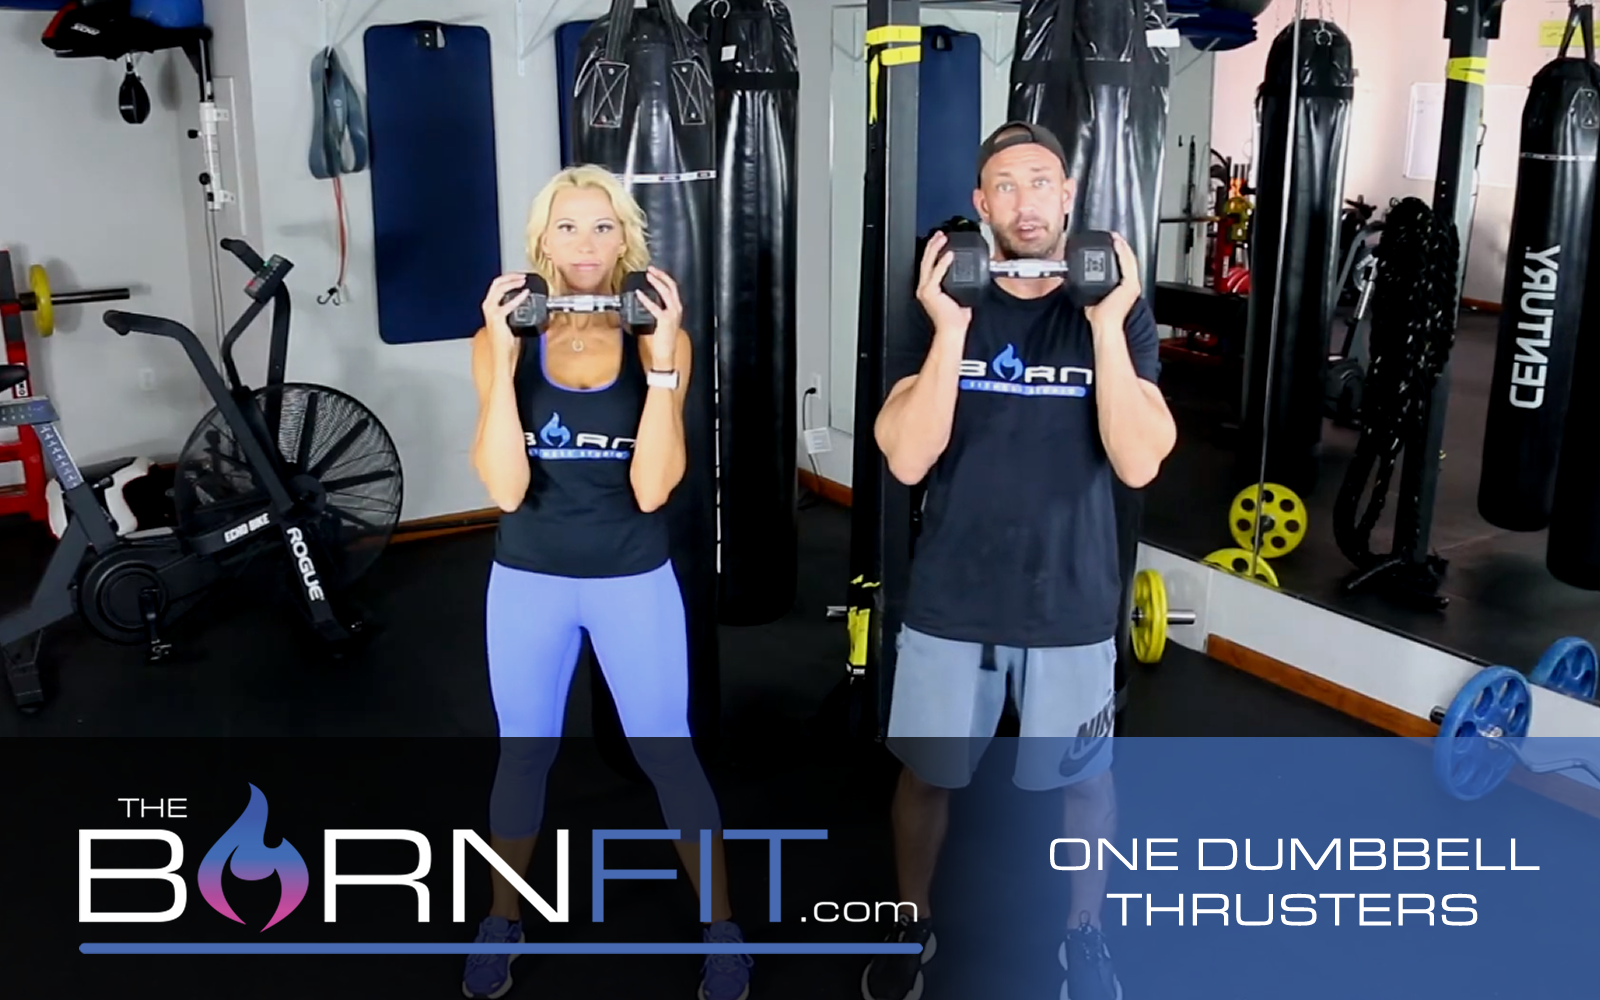 One dumbbell Thrusters workouts